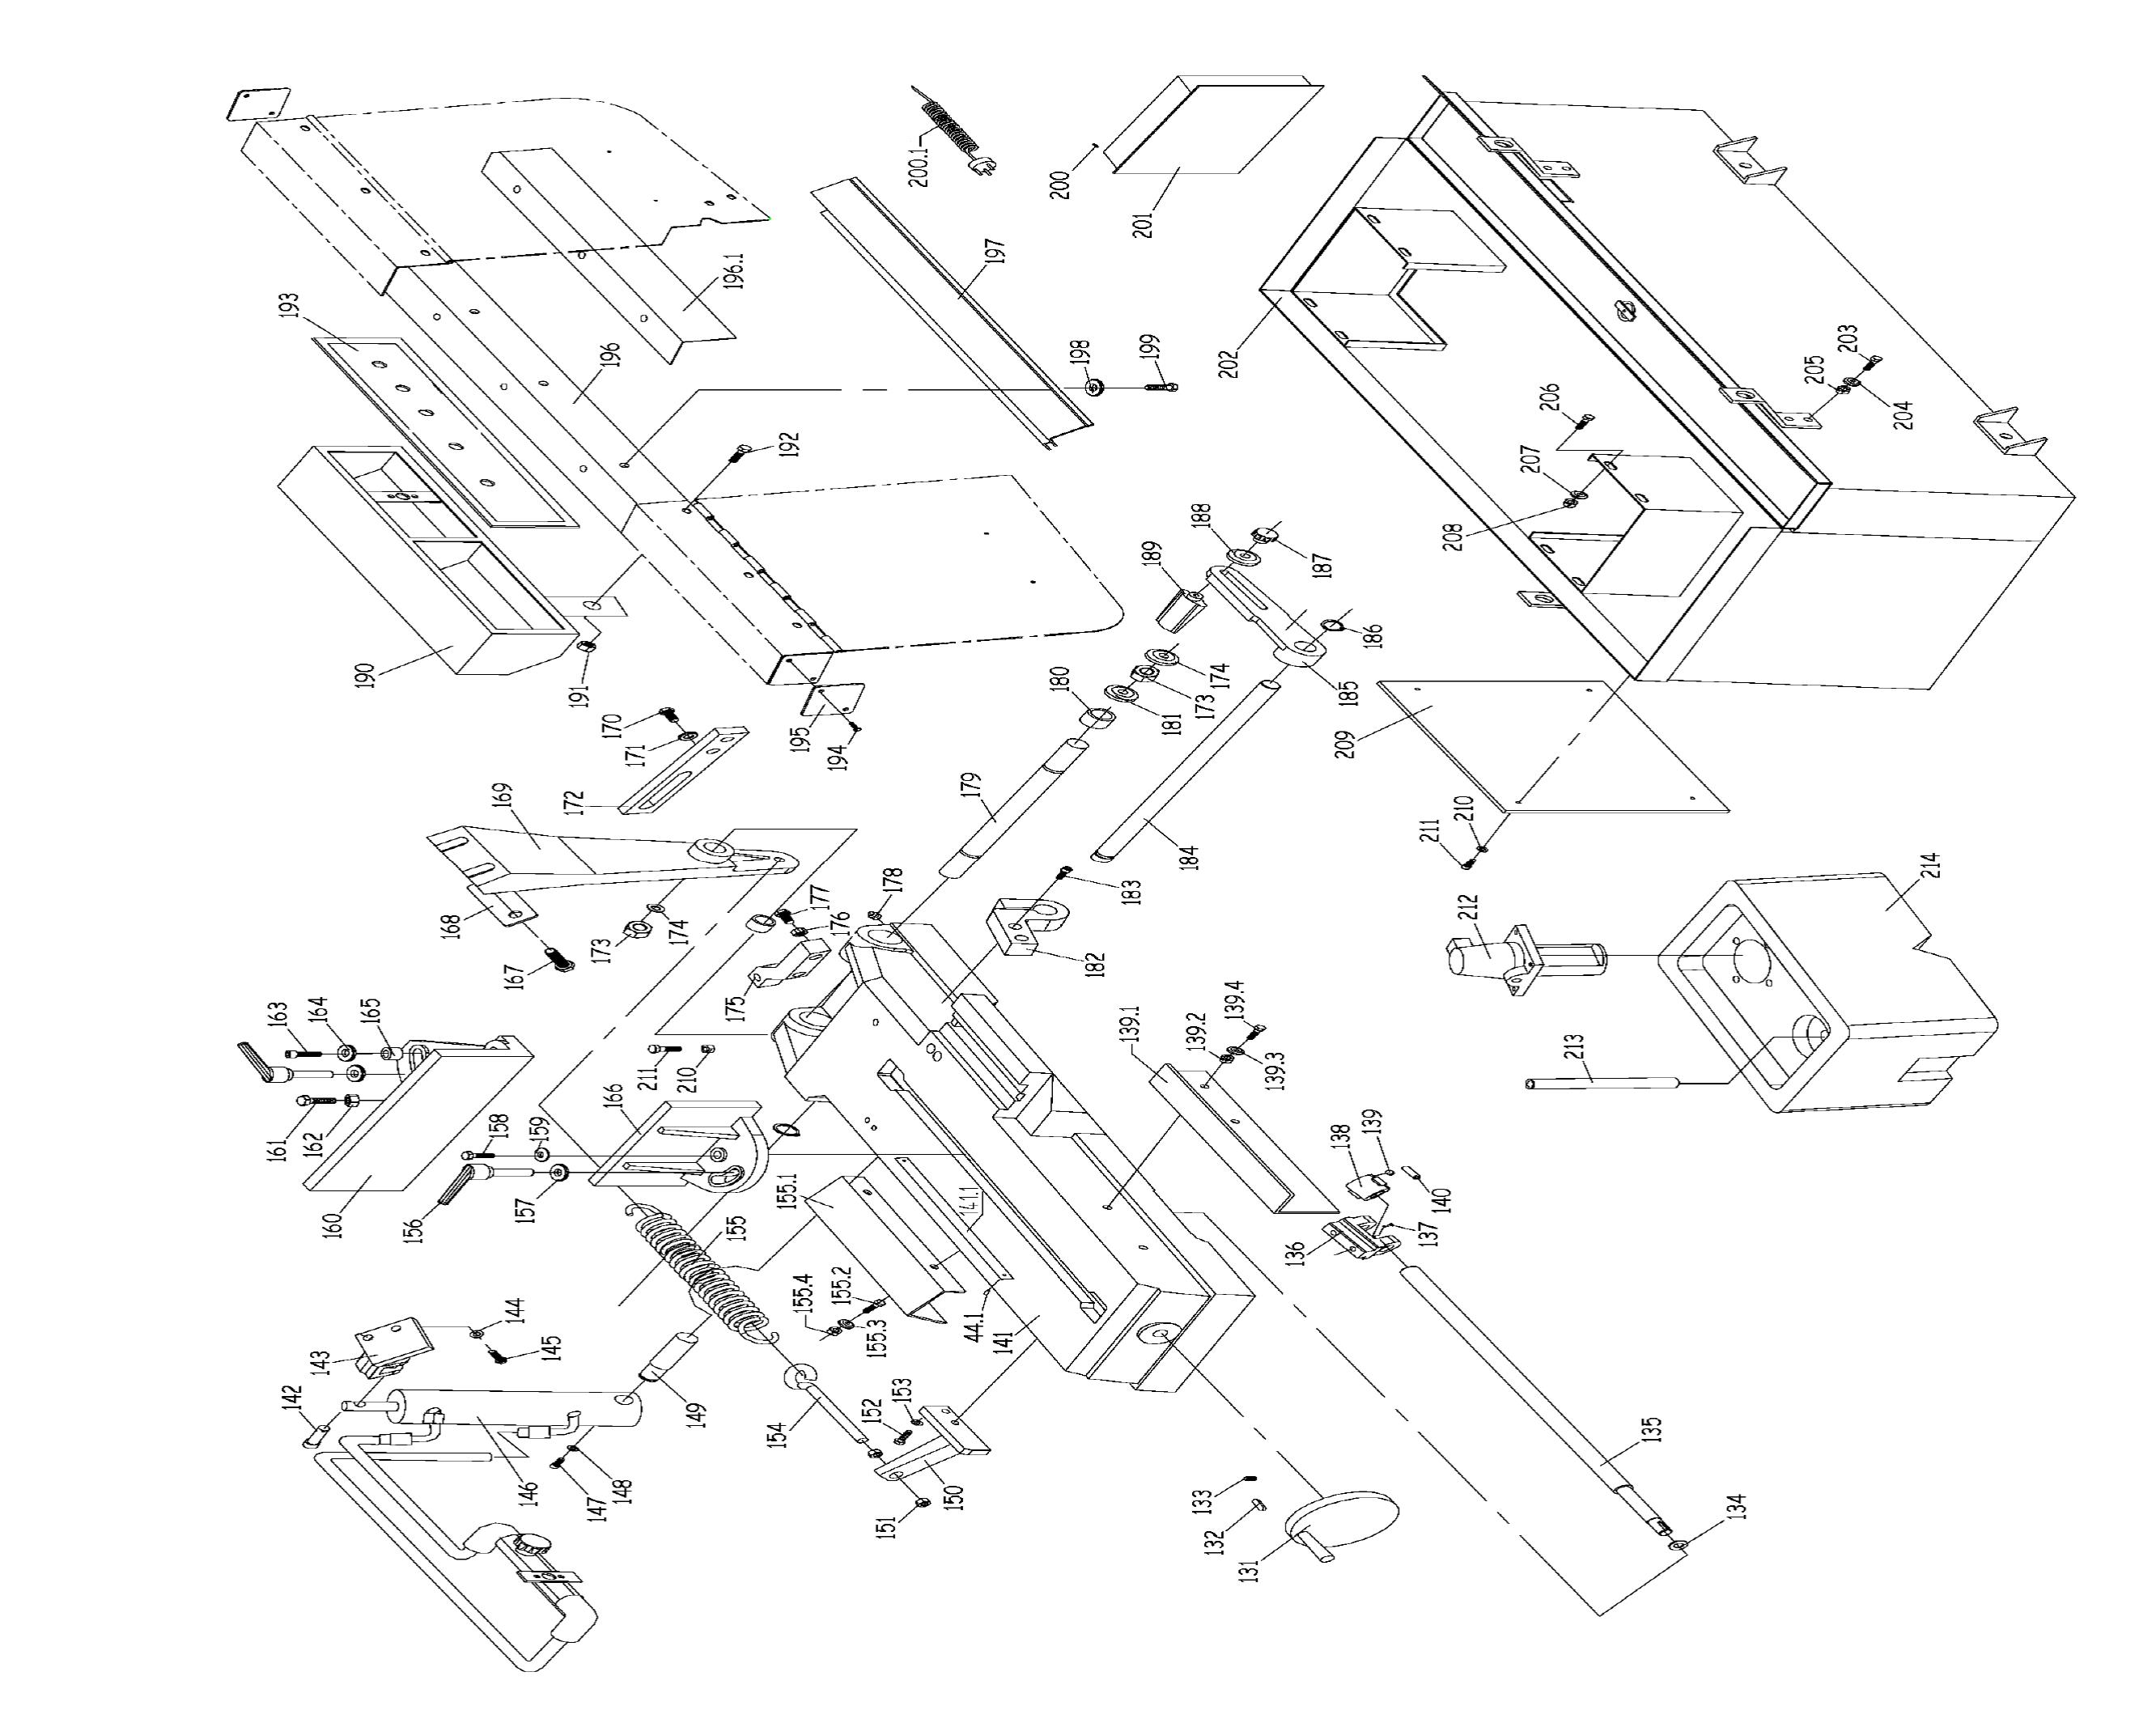 Sip 18 Metal Cutting Bandsaw Diagram